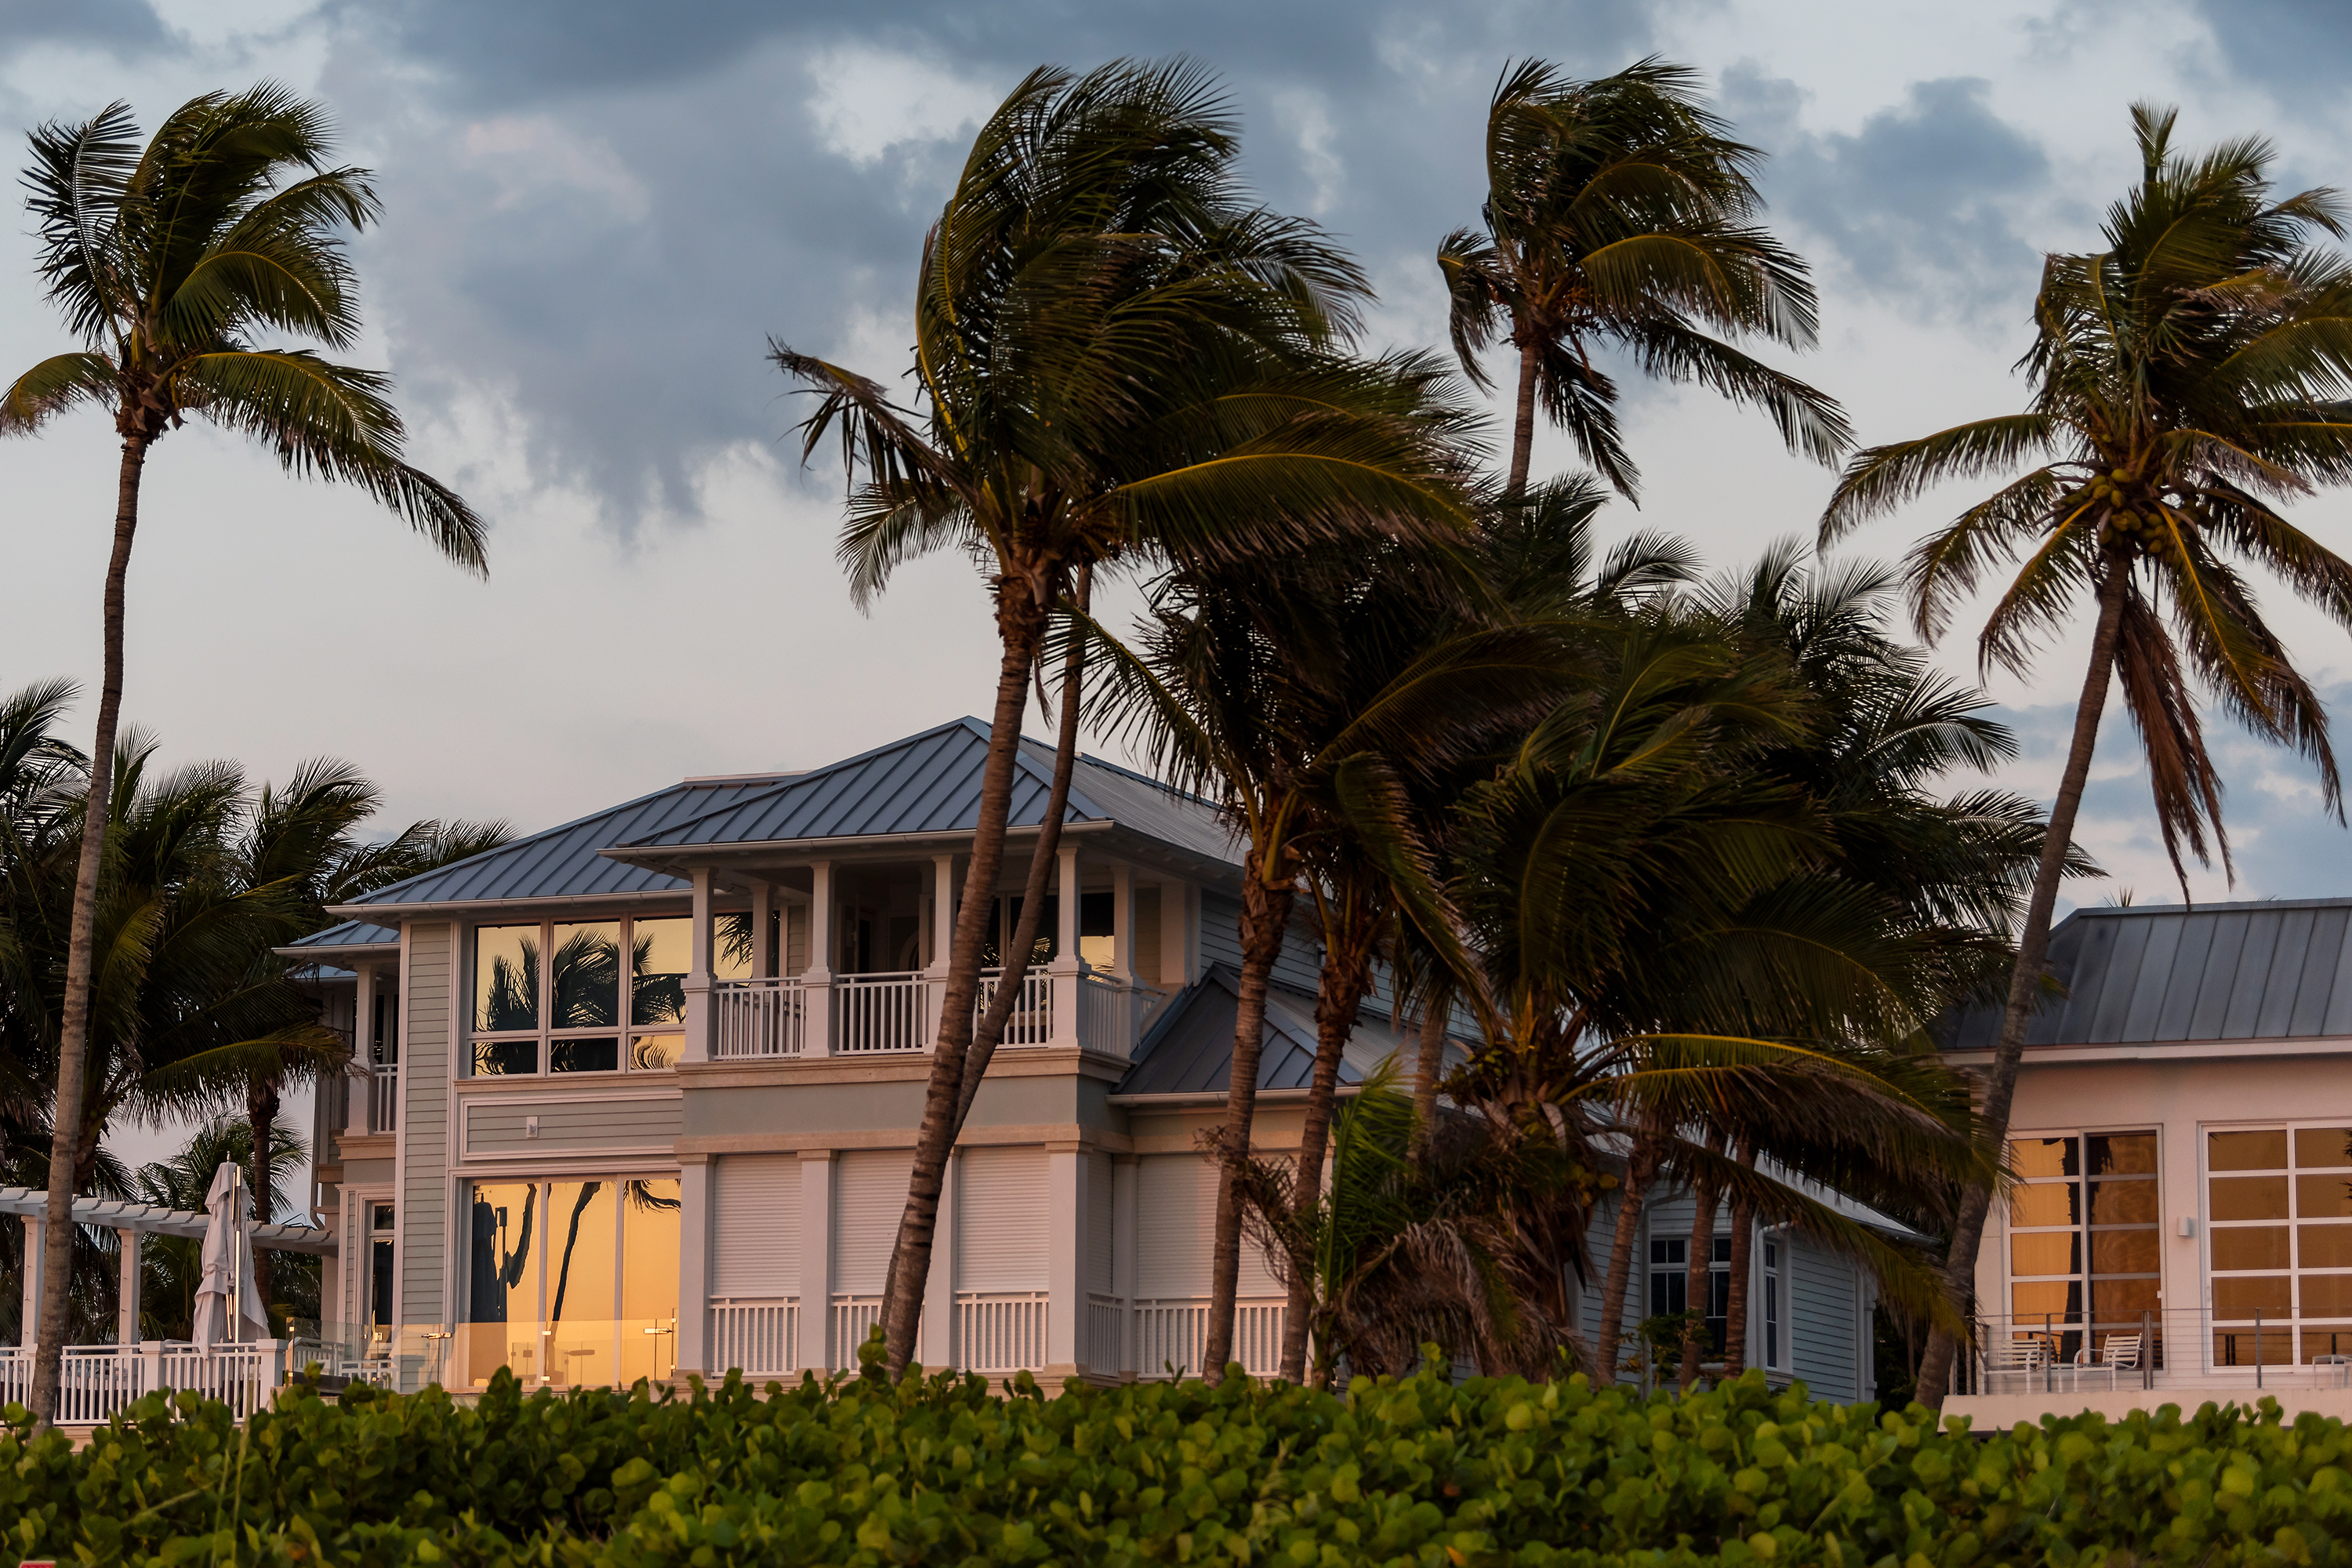 Vacation home in storm weather.